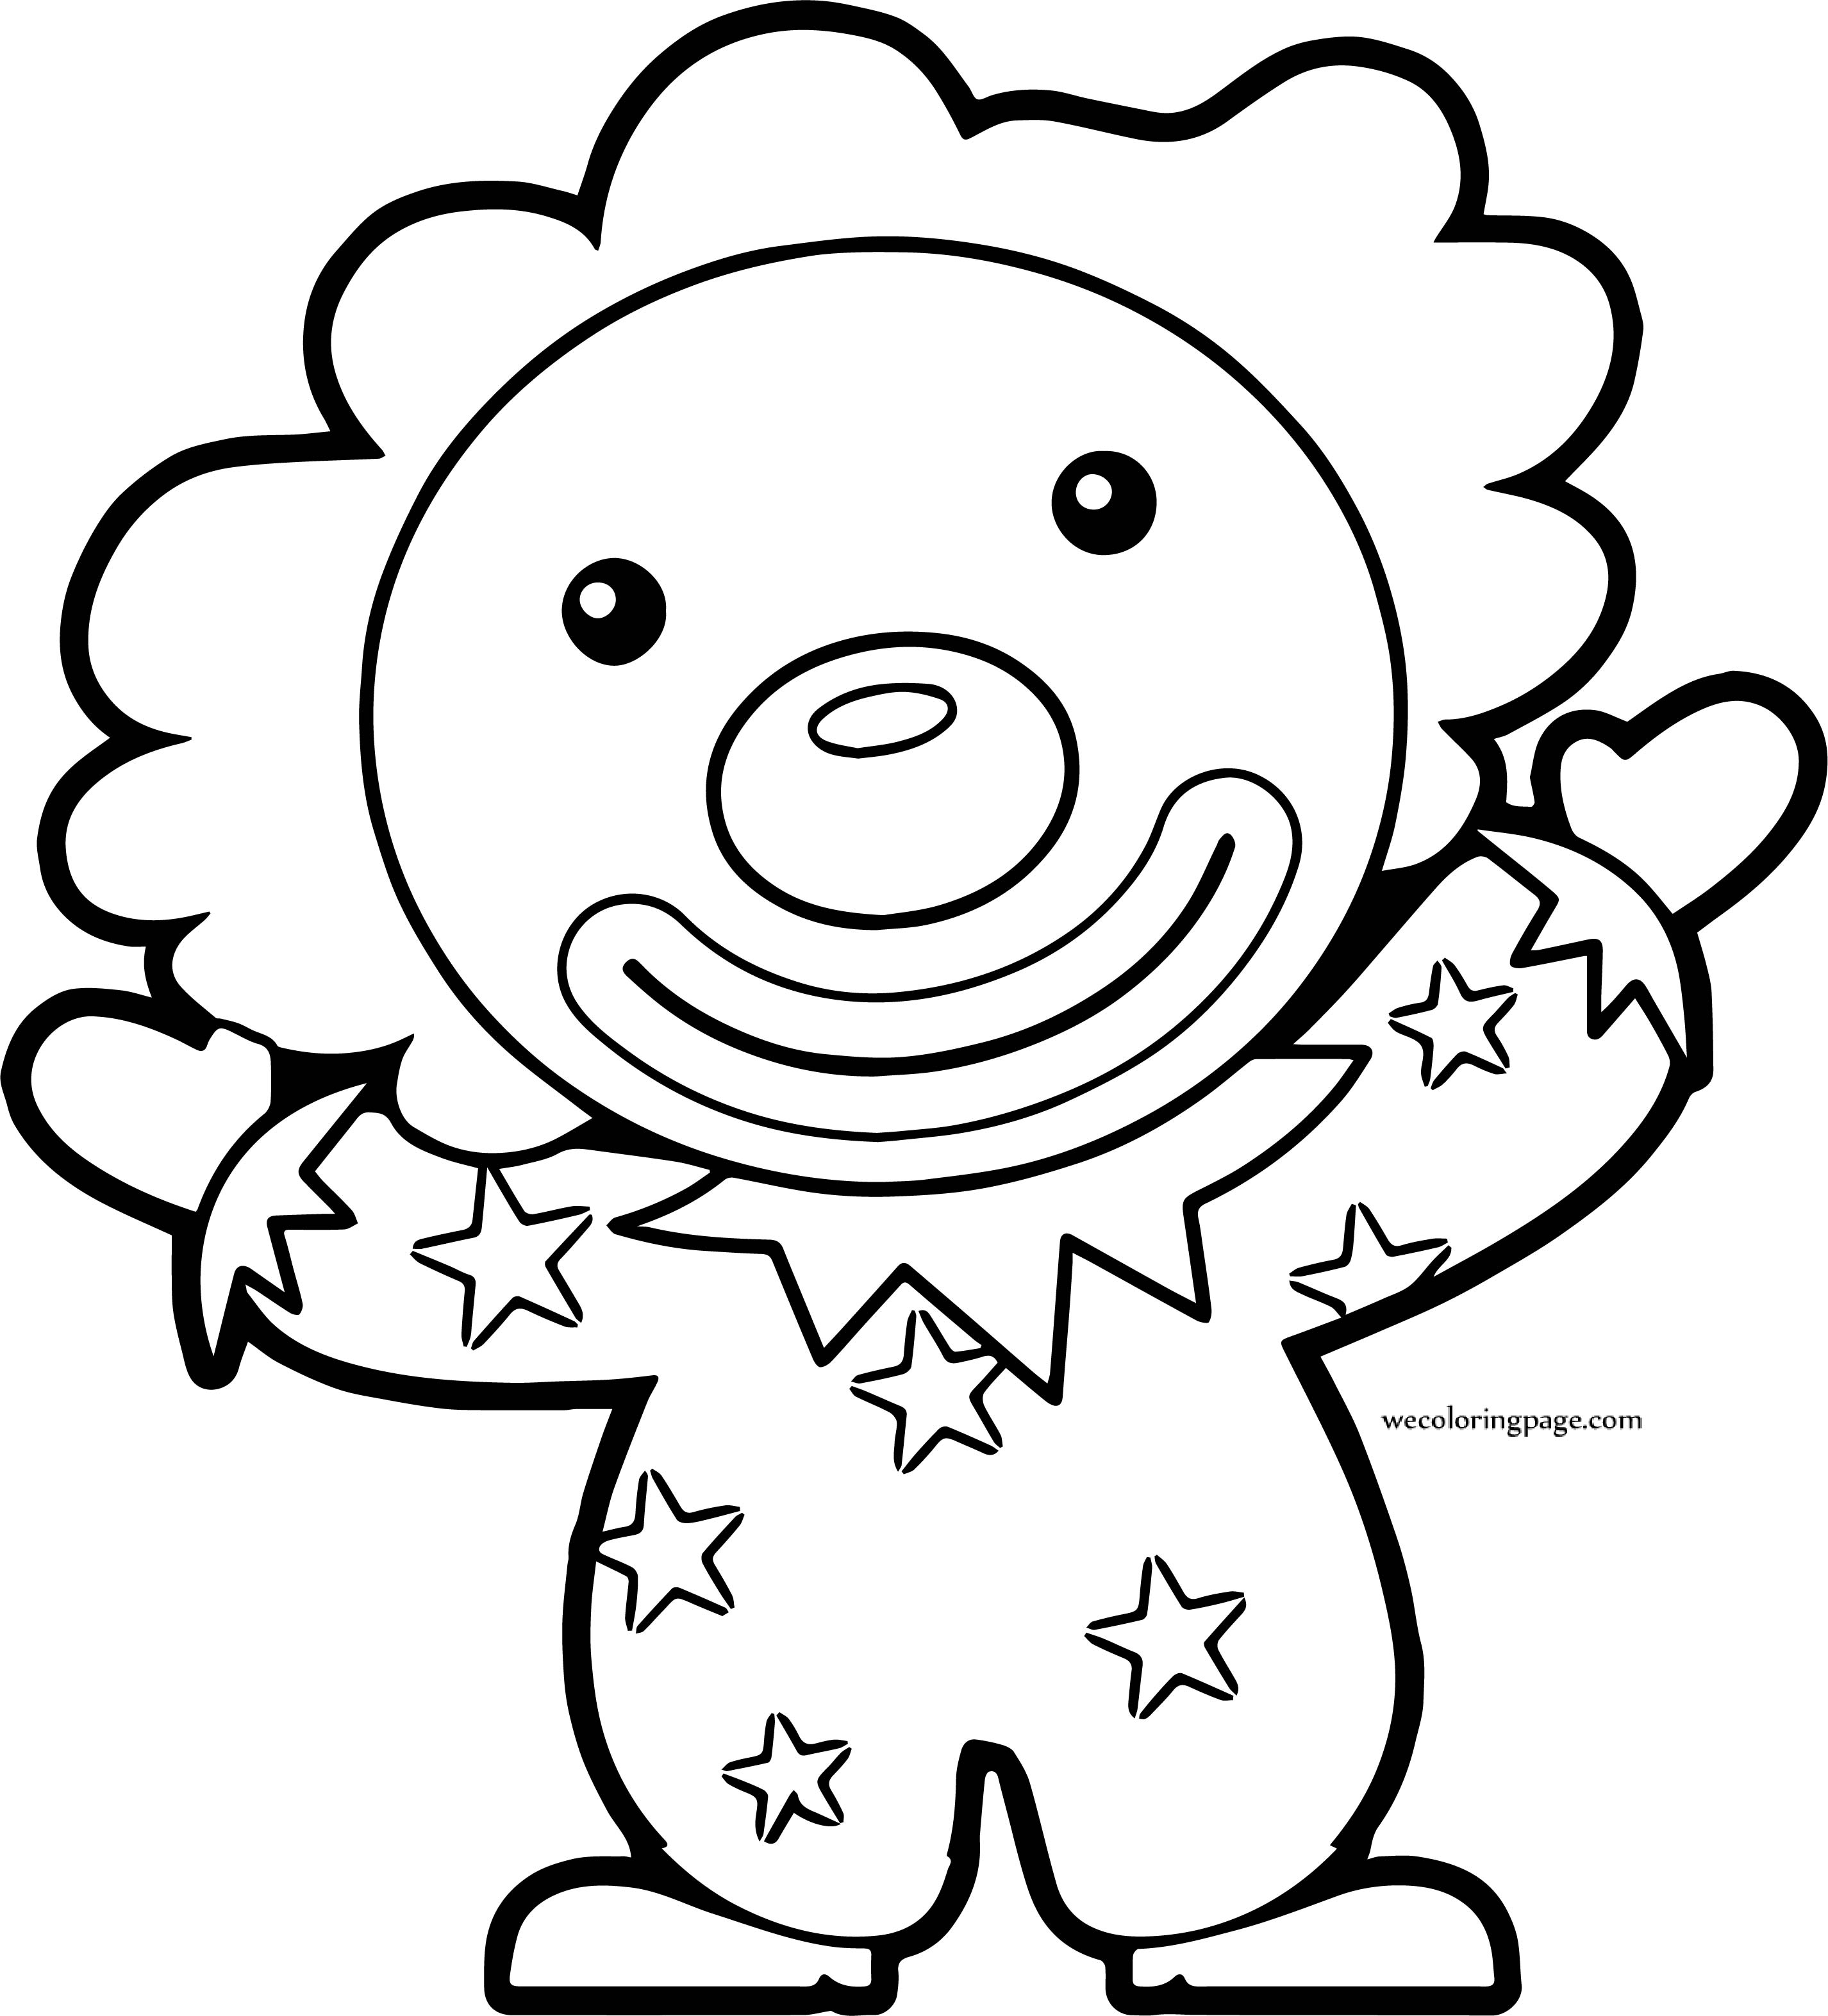 Clown Coloring Page WeColoringPage 037